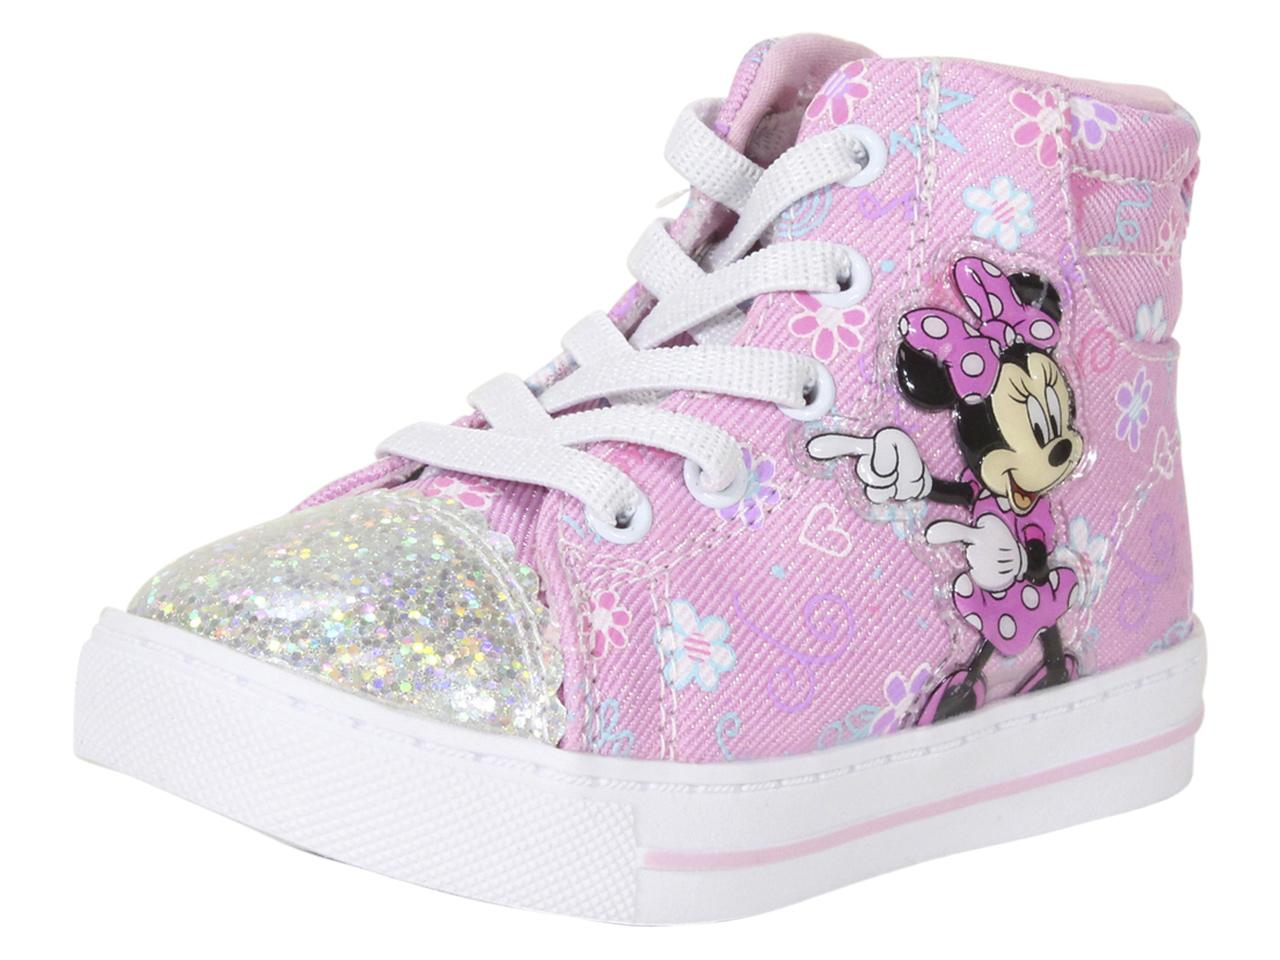 Minnie Mouse Canvas High Top Sneakers Shoes